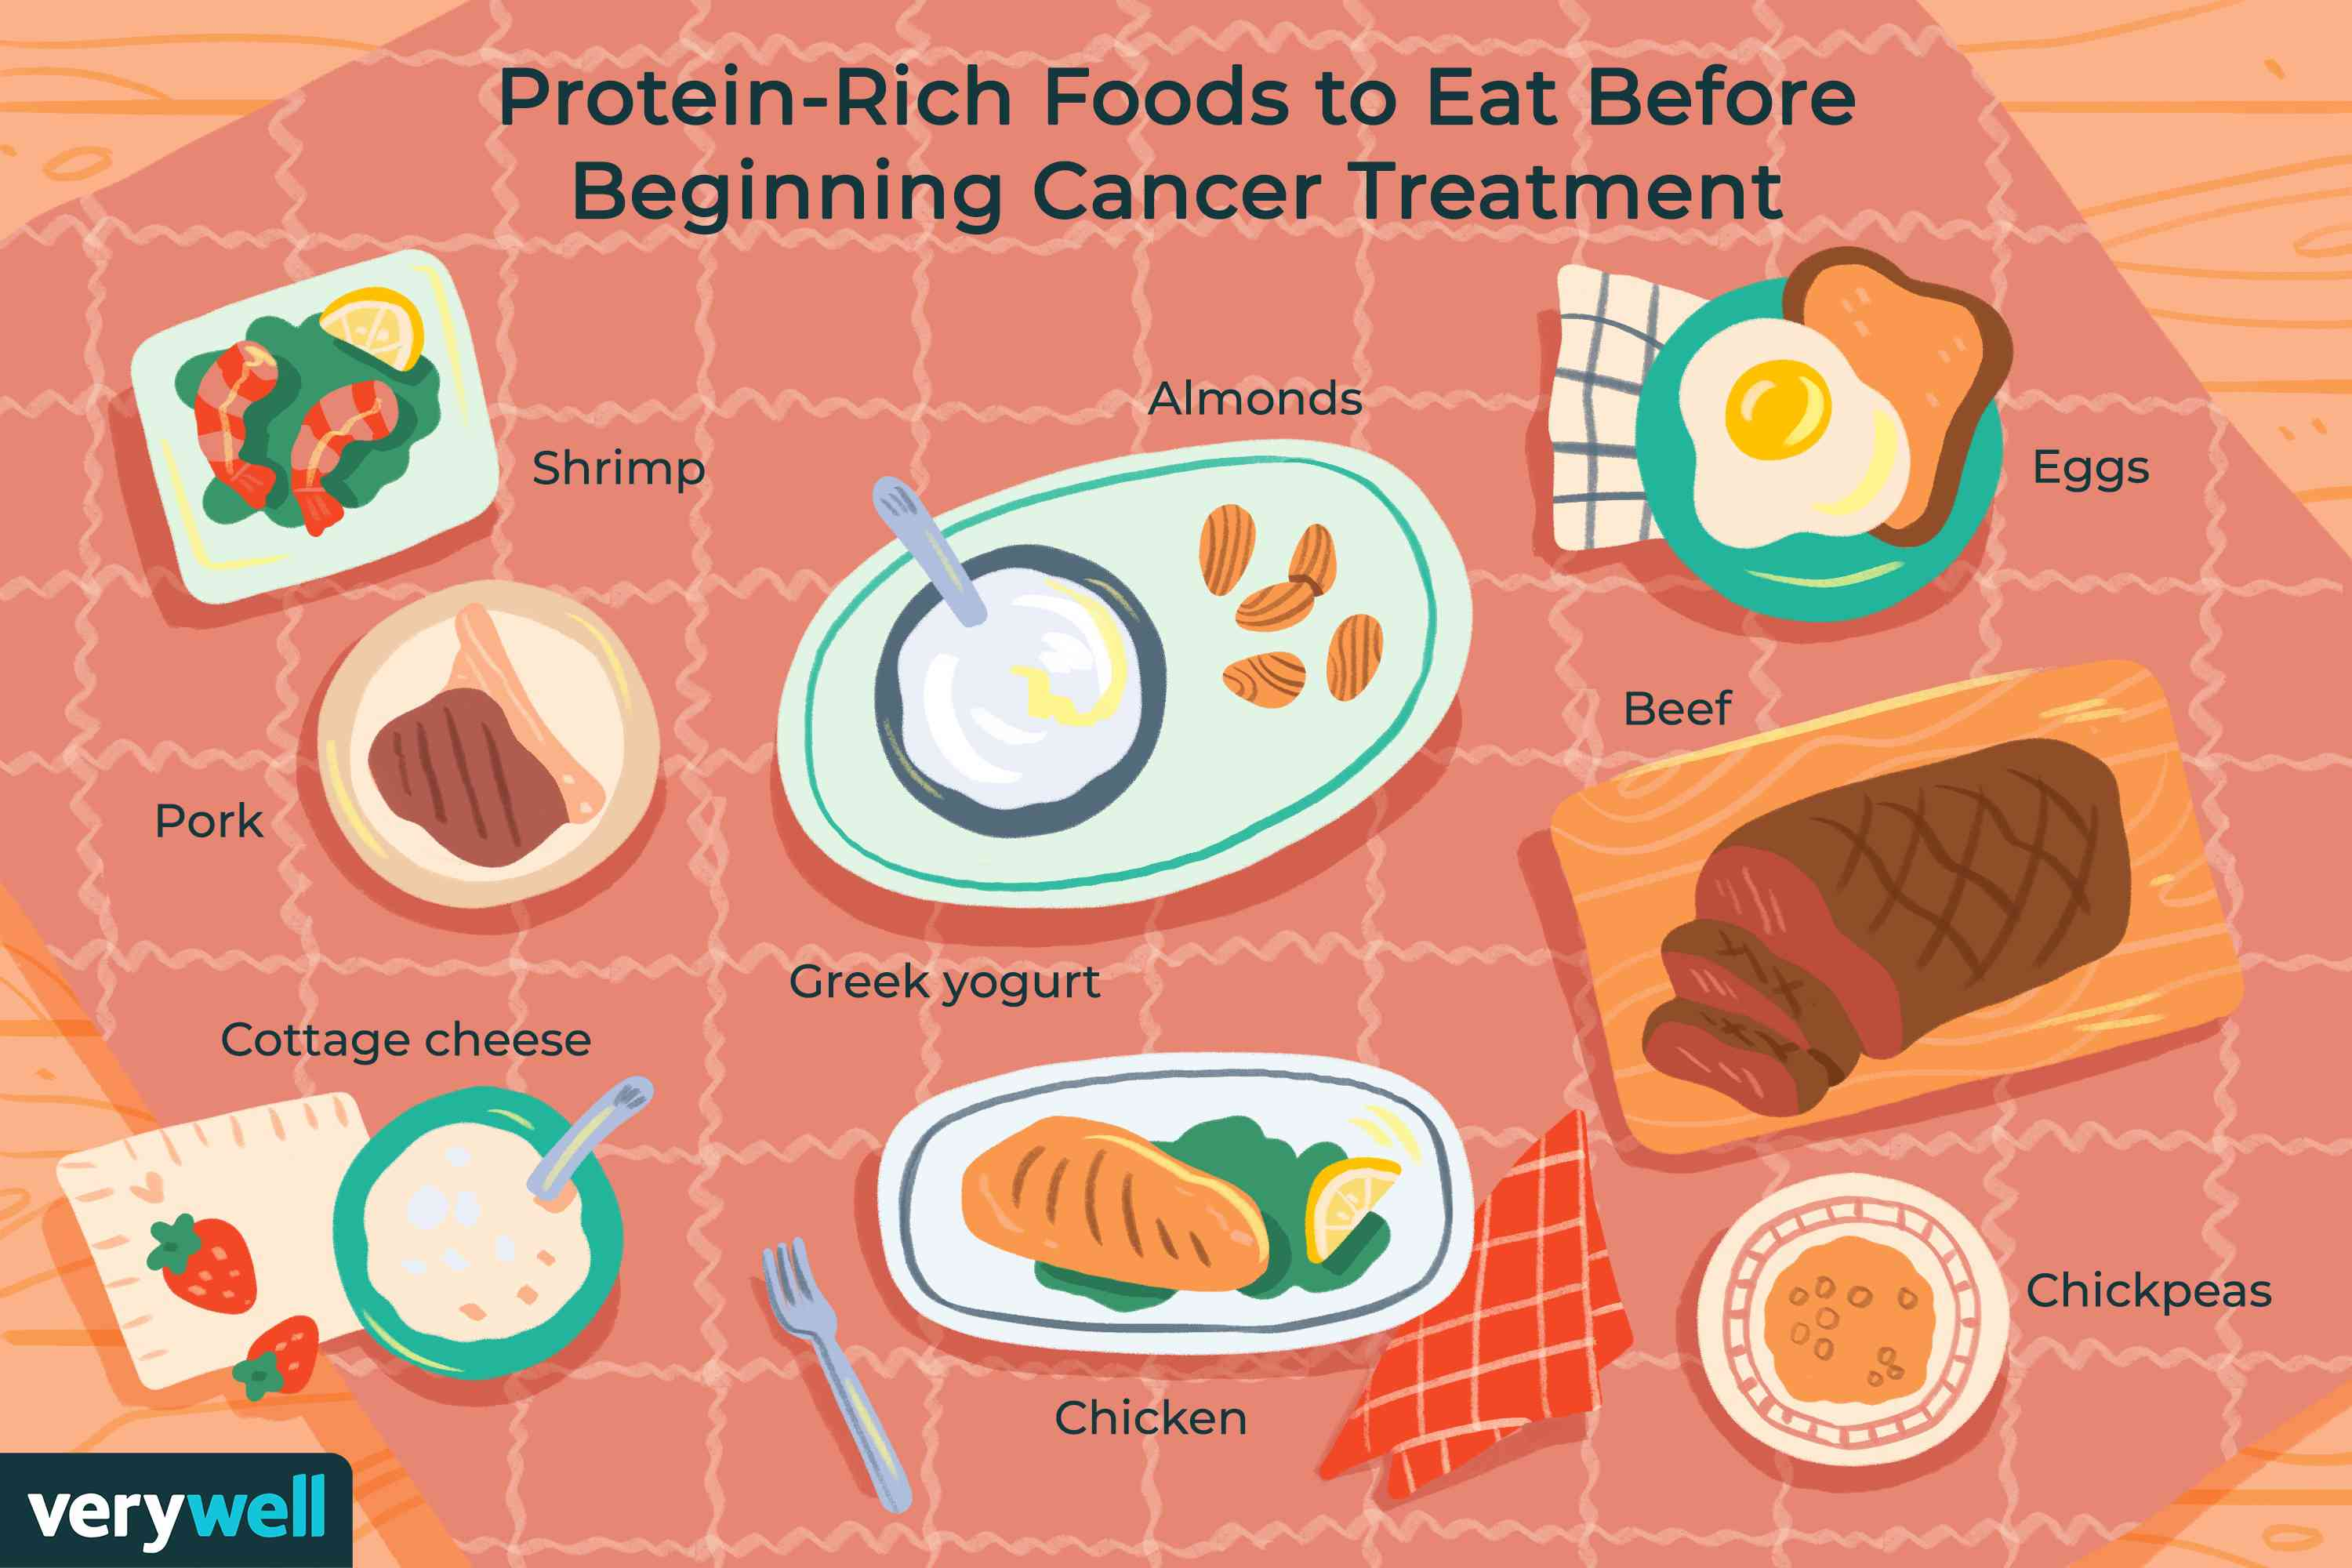 Protein-Rich Foods to Eat Before Beginning Cancer Treatment